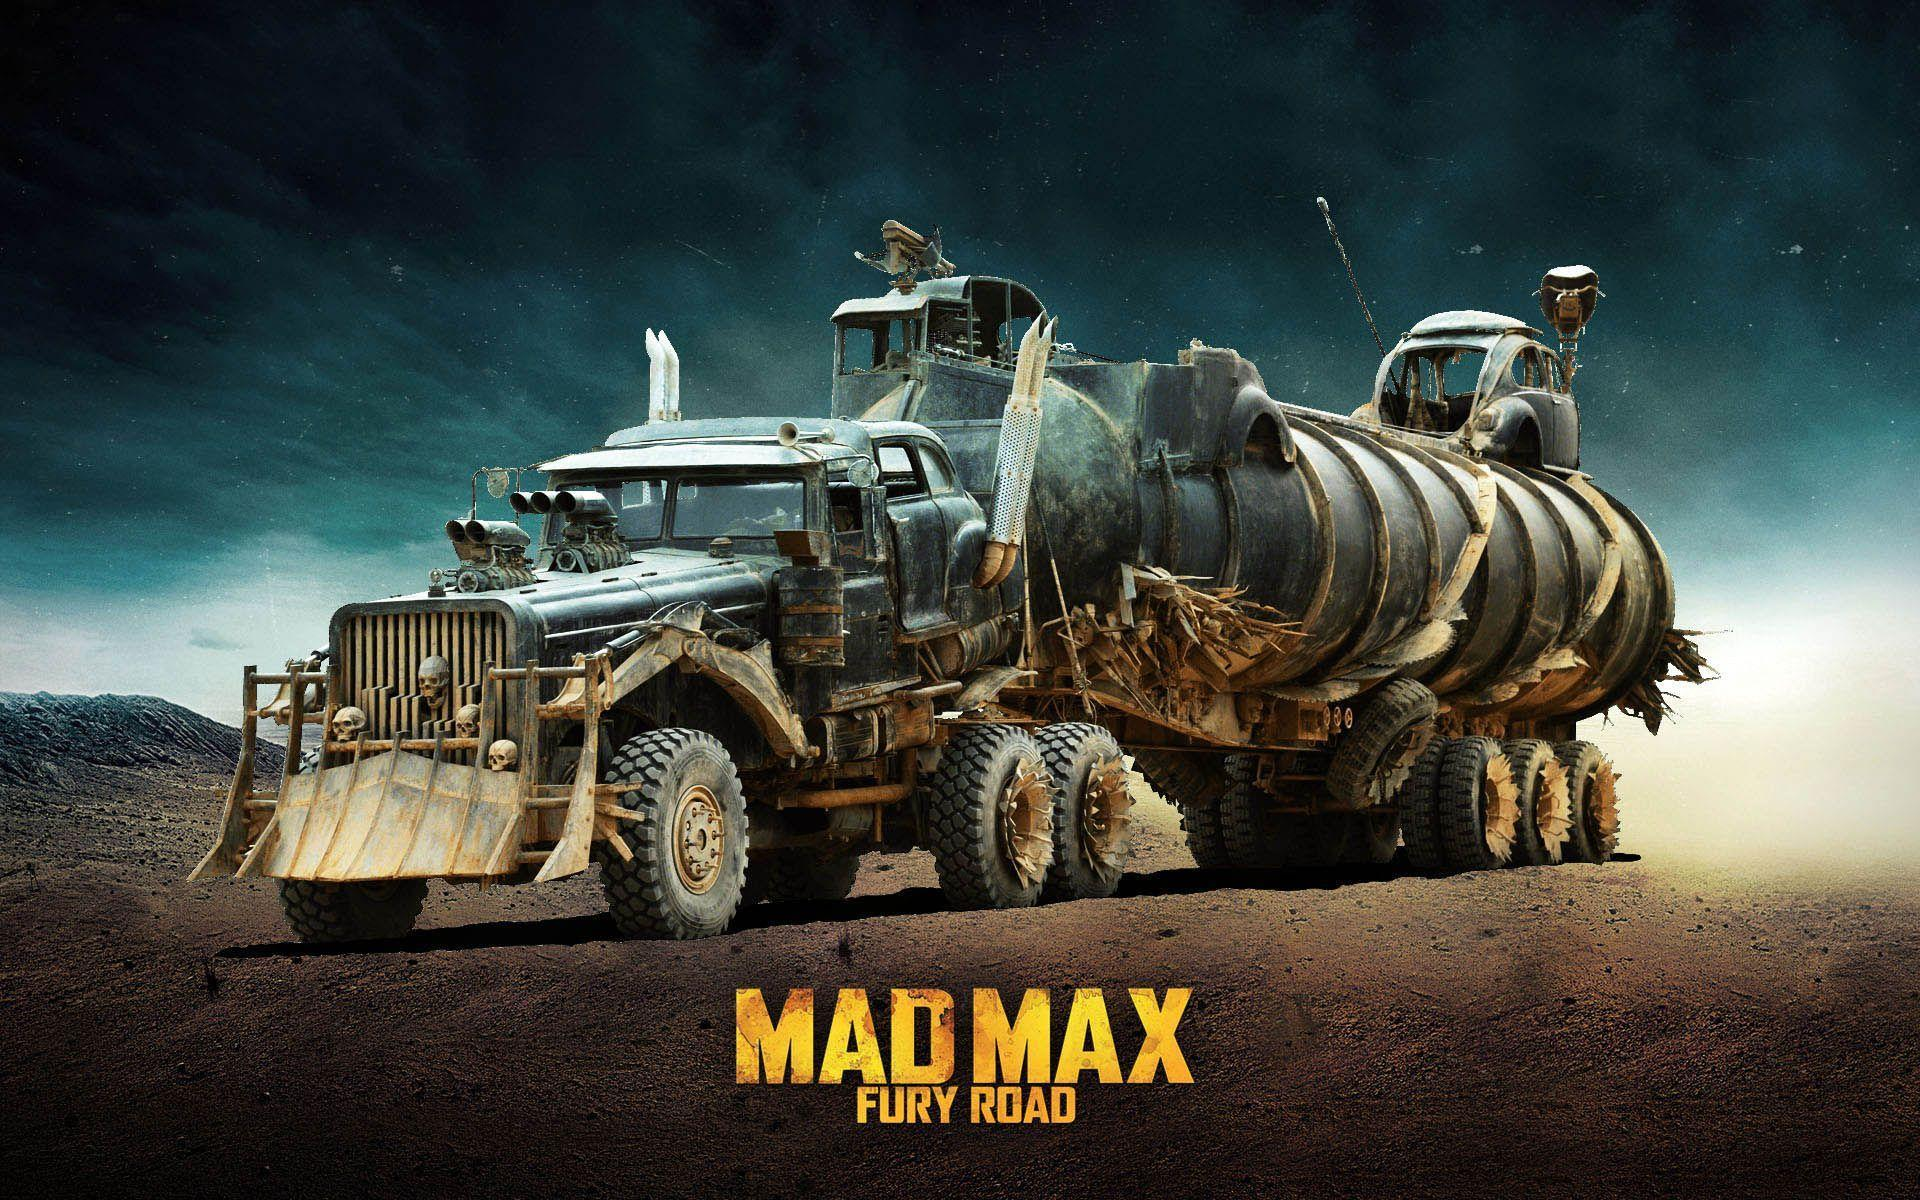 Mad Max: Fury Road Wallpapers - Wallpaper Cave